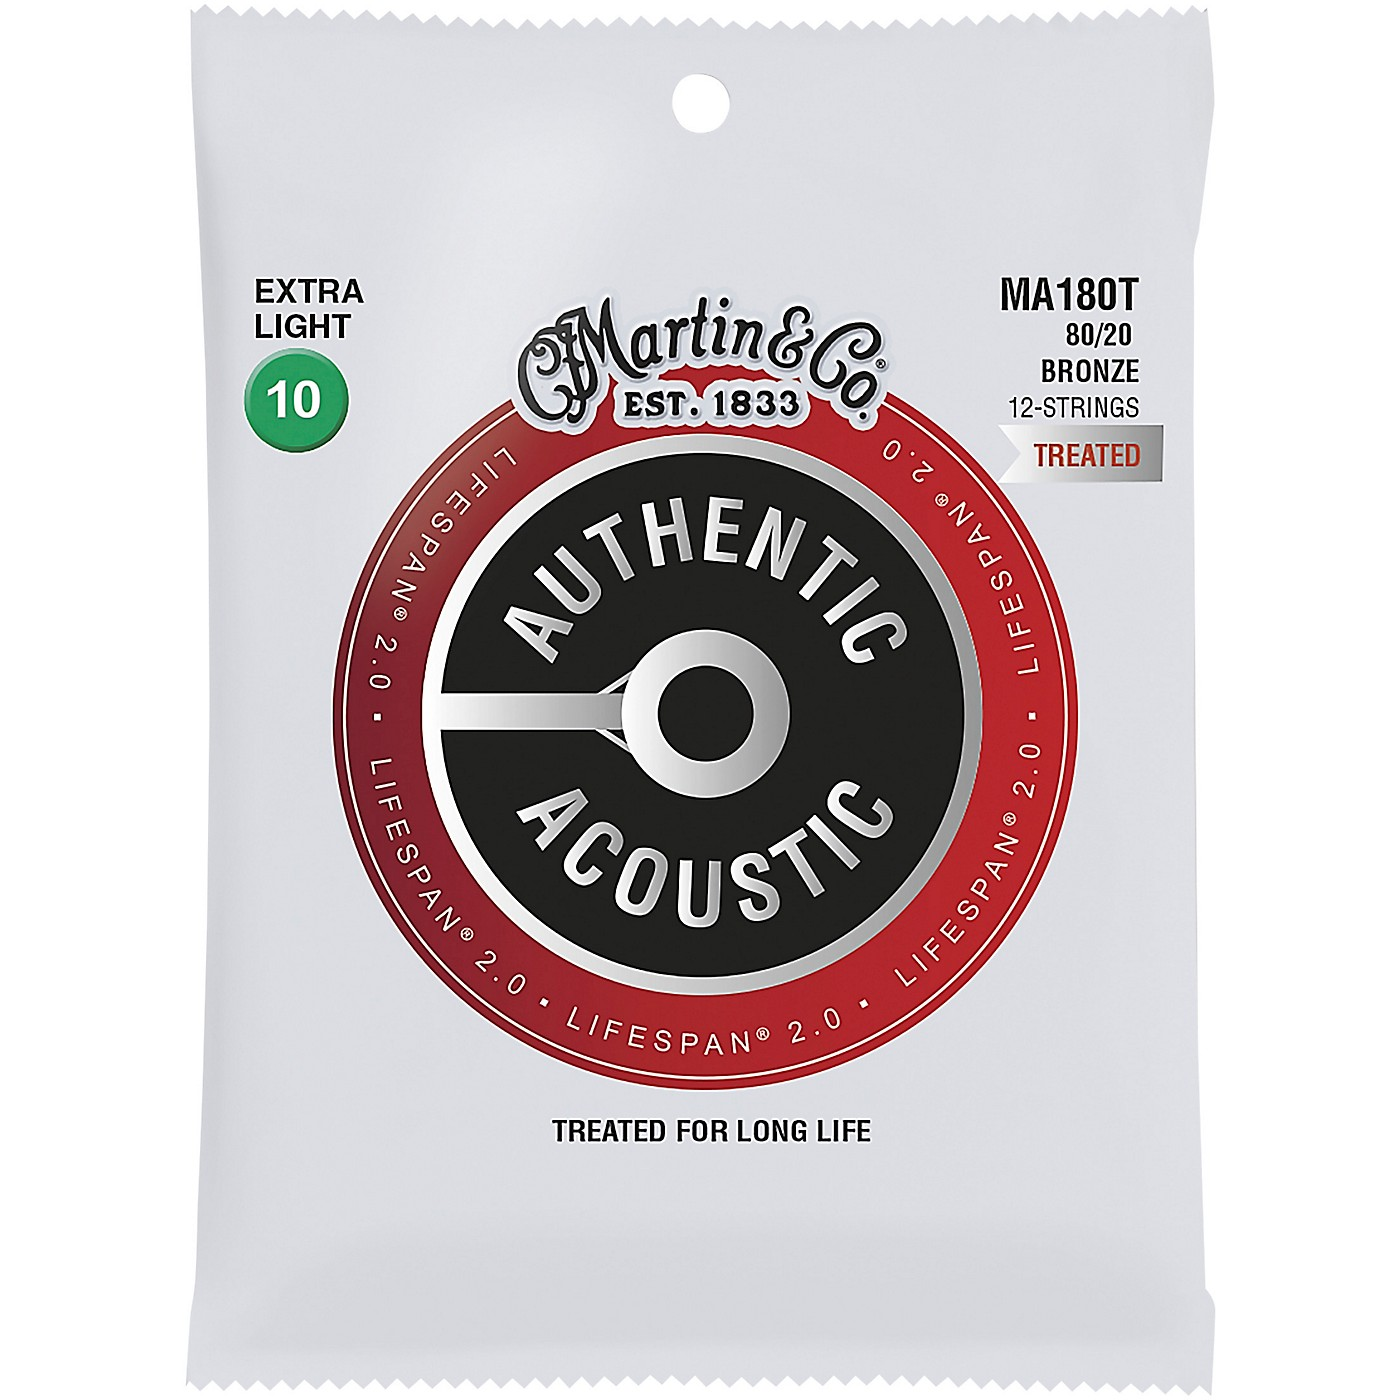 Martin MA180T Lifespan 2.0 12-String 80/20 Bronze Extra-Light Authentic Acoustic Guitar Strings thumbnail